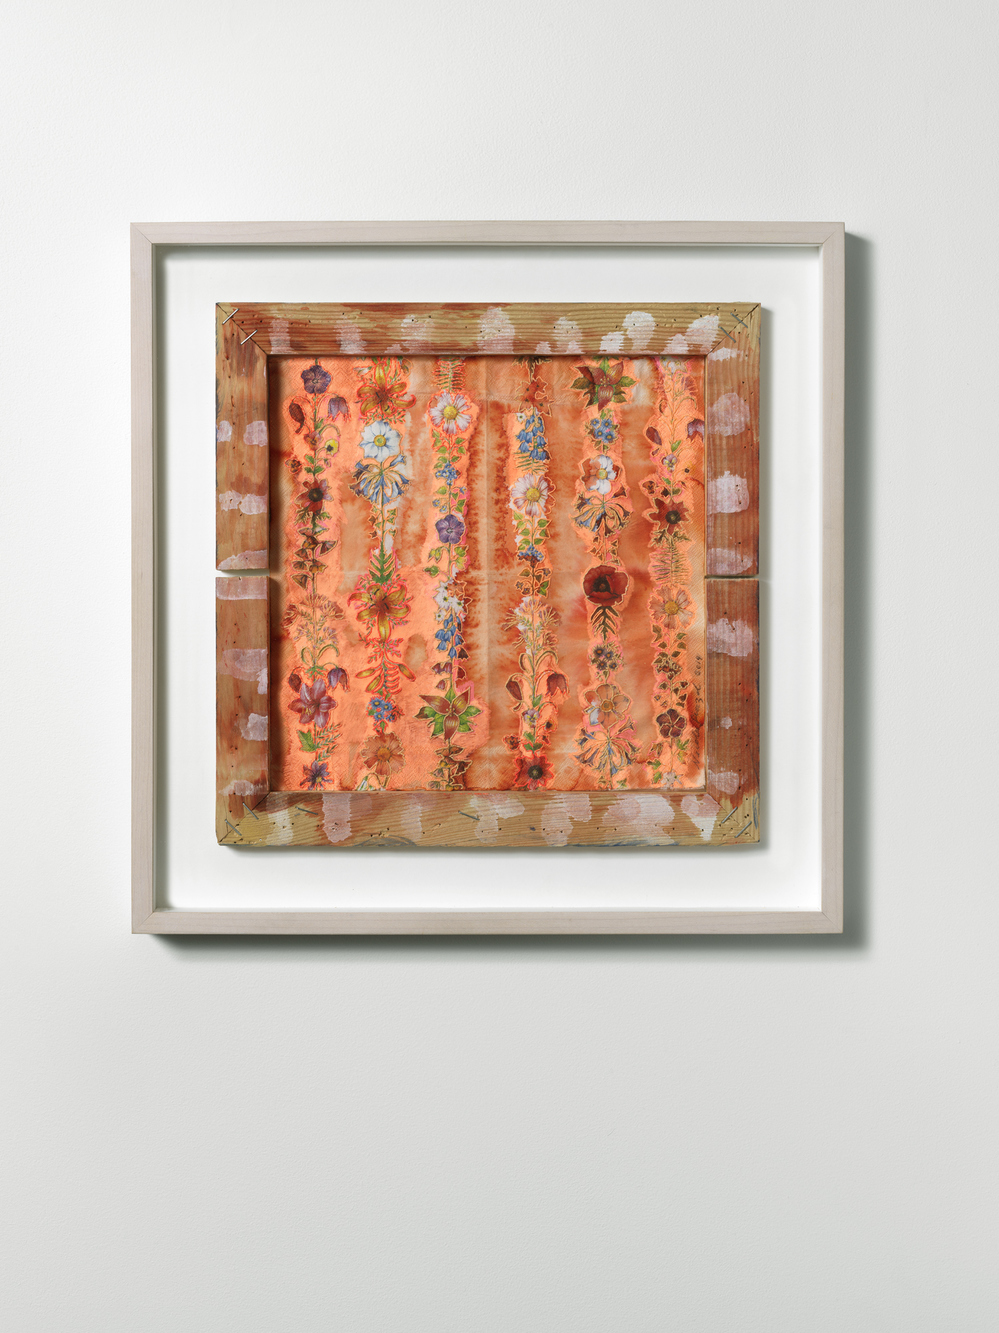 Nicola Ginzel  THREAD Fluorescent Fragments - 2014 - continued paper napkin with commercially printed flowers, embroidered by hand, ink, backed with BEVA archival adhesive, used wooden stretcher frame